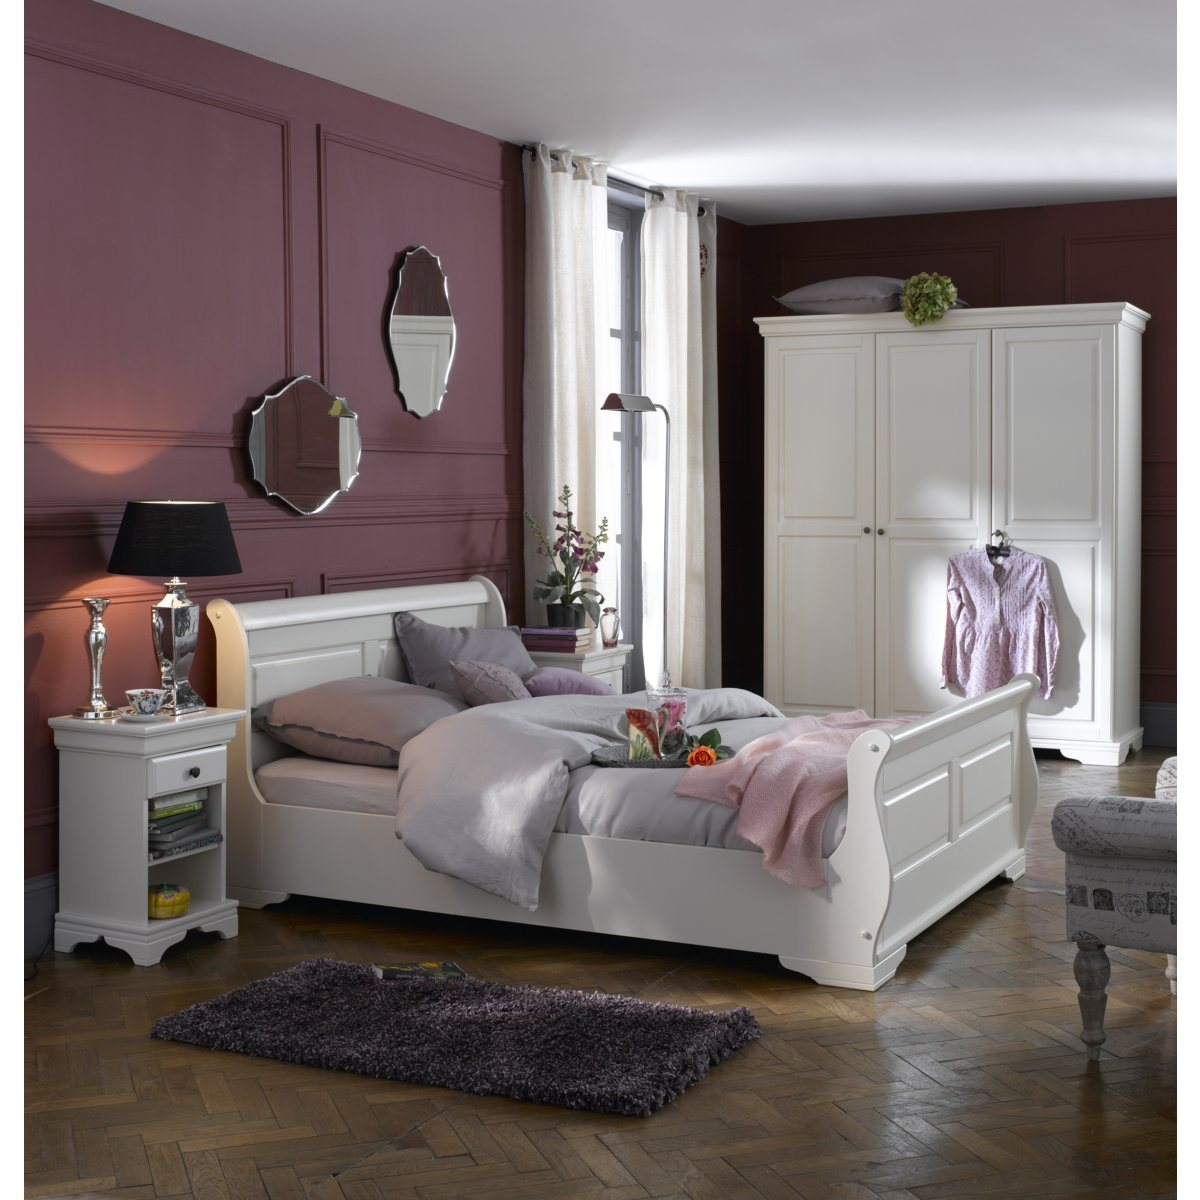 couleurs de la chambre mobilier canape deco. Black Bedroom Furniture Sets. Home Design Ideas